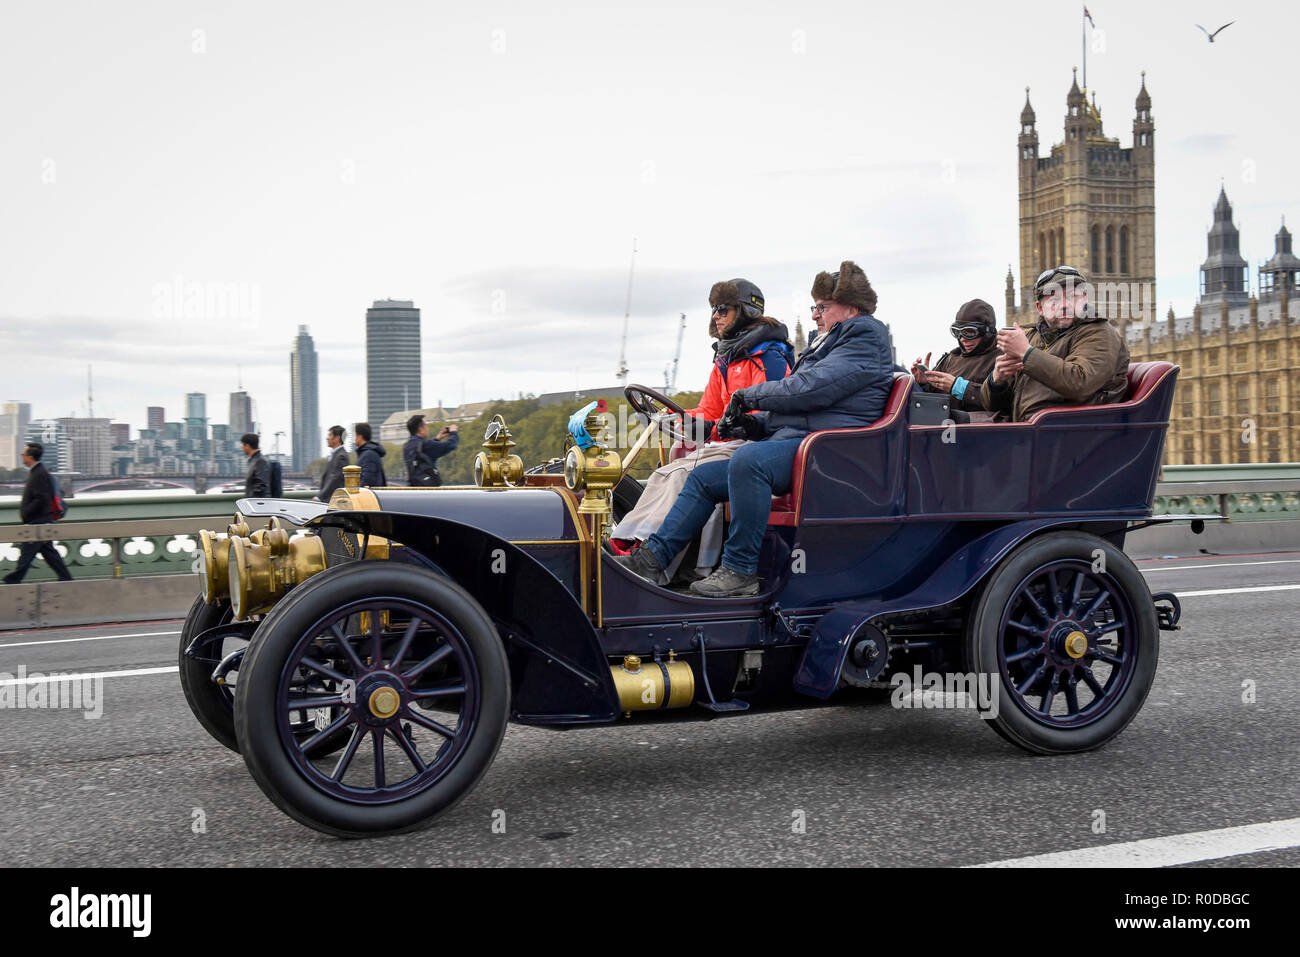 London, UK.  4 November 2018.  Participants cross Westminster Bridge en route to the coast in the 122nd Bonhams London to Brighton Veteran Car Run.  The 60 mile journey is undertaken by over 600 pre-1905 manufactured vehicles, some of which suffer frequent breakdowns.  The Run commemorates the Emancipation Run of 14 November 1896, which celebrated the Locomotives on the Highway Act, when the speed limit for 'light locomotives' was raised from 4 mph to 14 mph, abolishing the need for vehicles to be preceded by a man on foot.   Credit: Stephen Chung / Alamy Live News - Stock Image